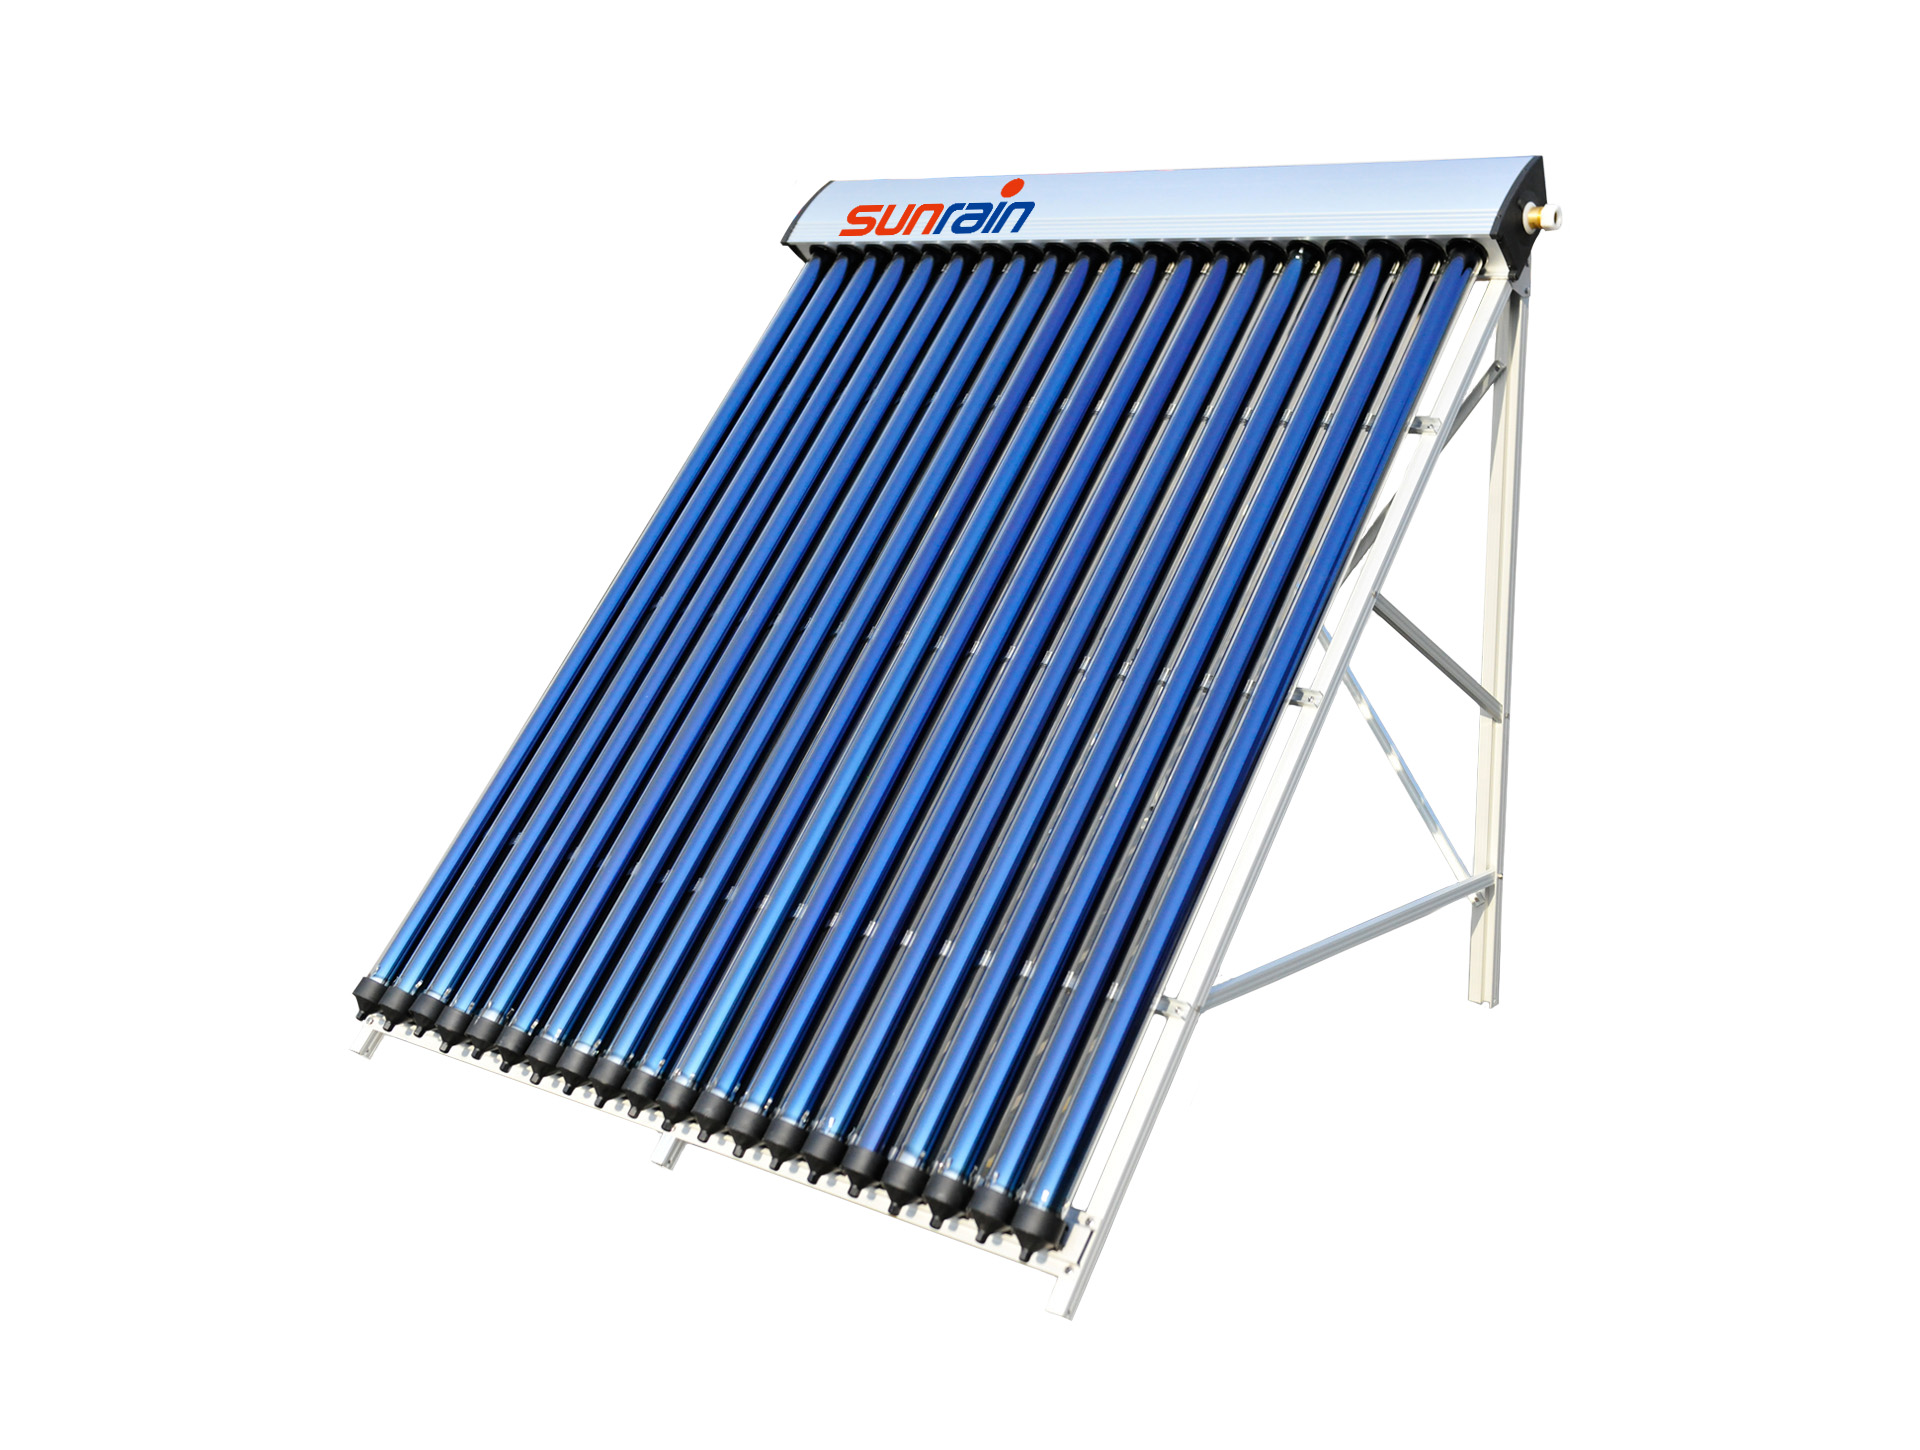 SunRain Solar Vacuum Tube Collector- 20 Tube Solar Water Heater